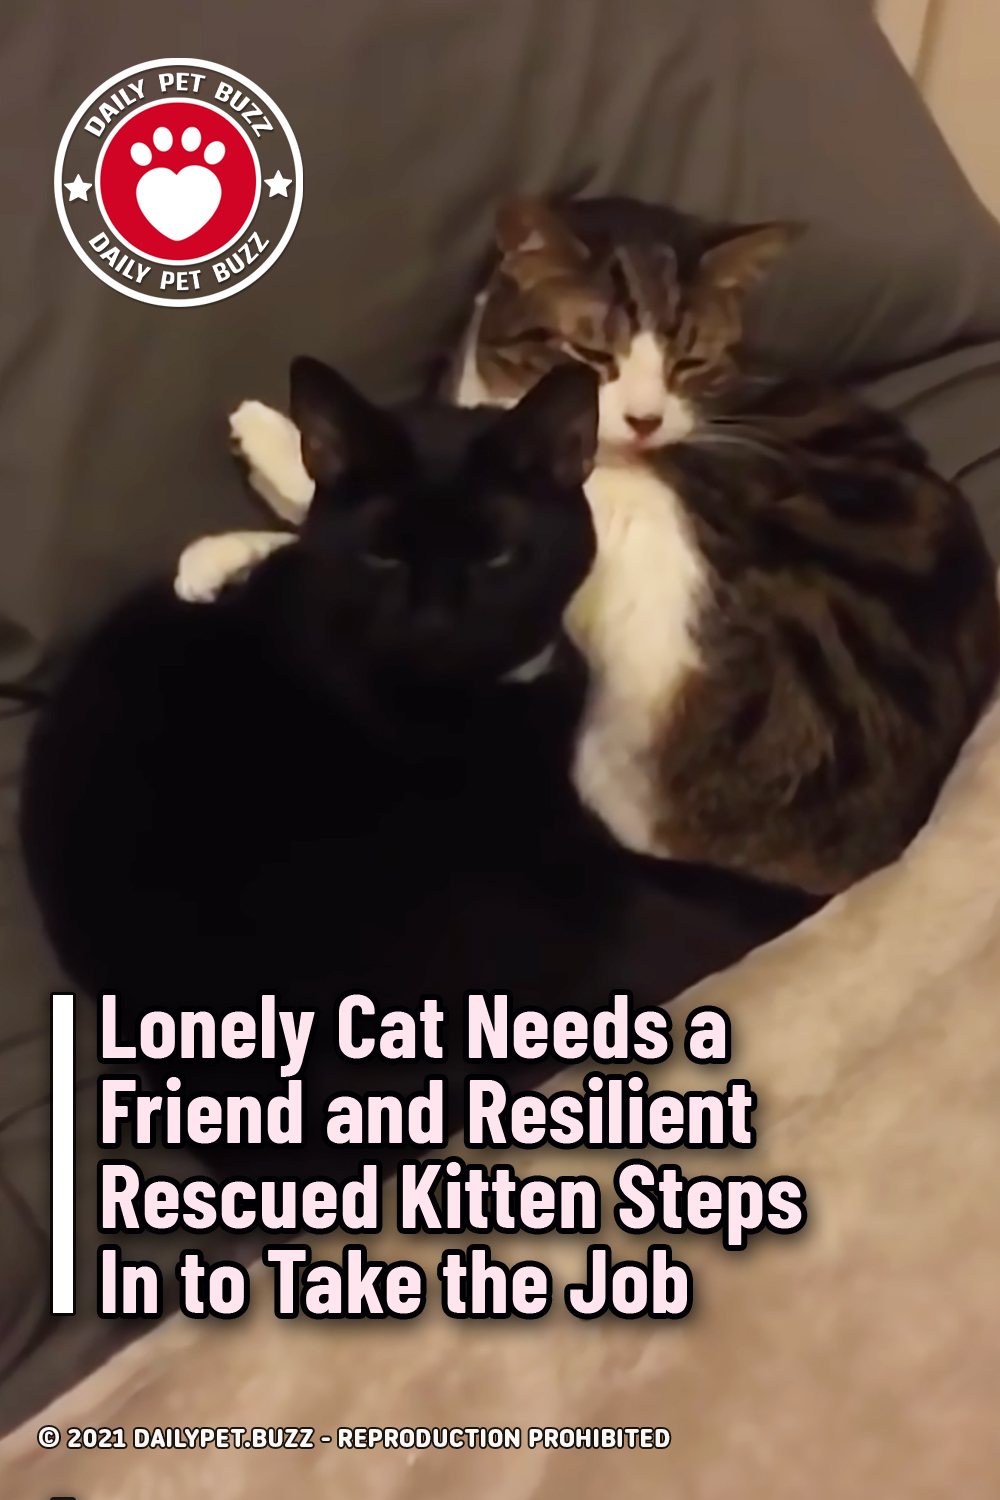 Lonely Cat Needs a Friend and Resilient Rescued Kitten Steps In to Take the Job